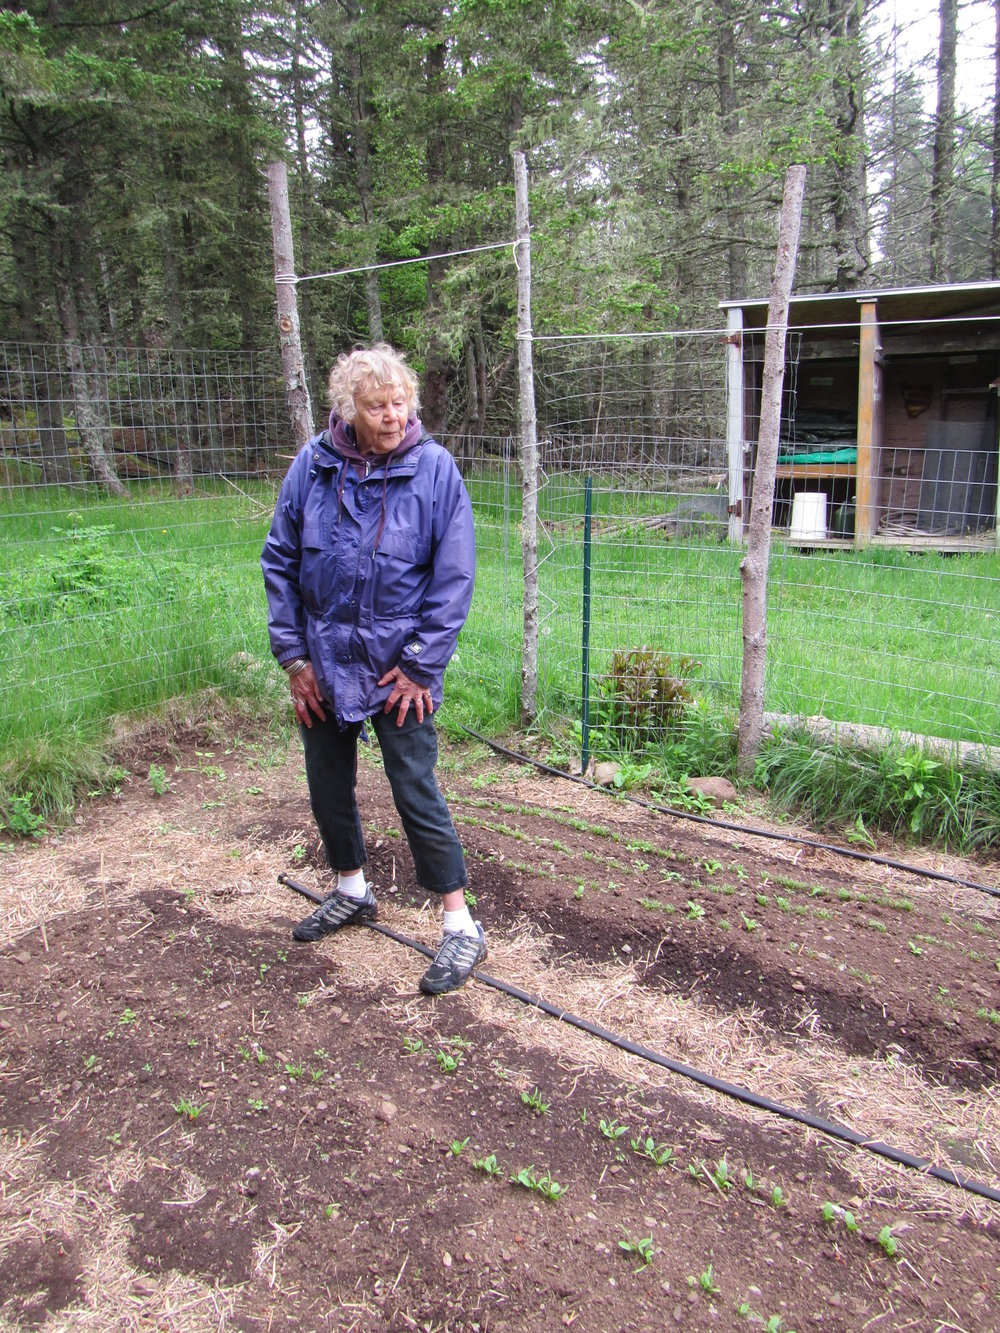 Ruth in the lead in the garden and outlasting us all...no one else makes sure our garden gets planted like Ruth does!